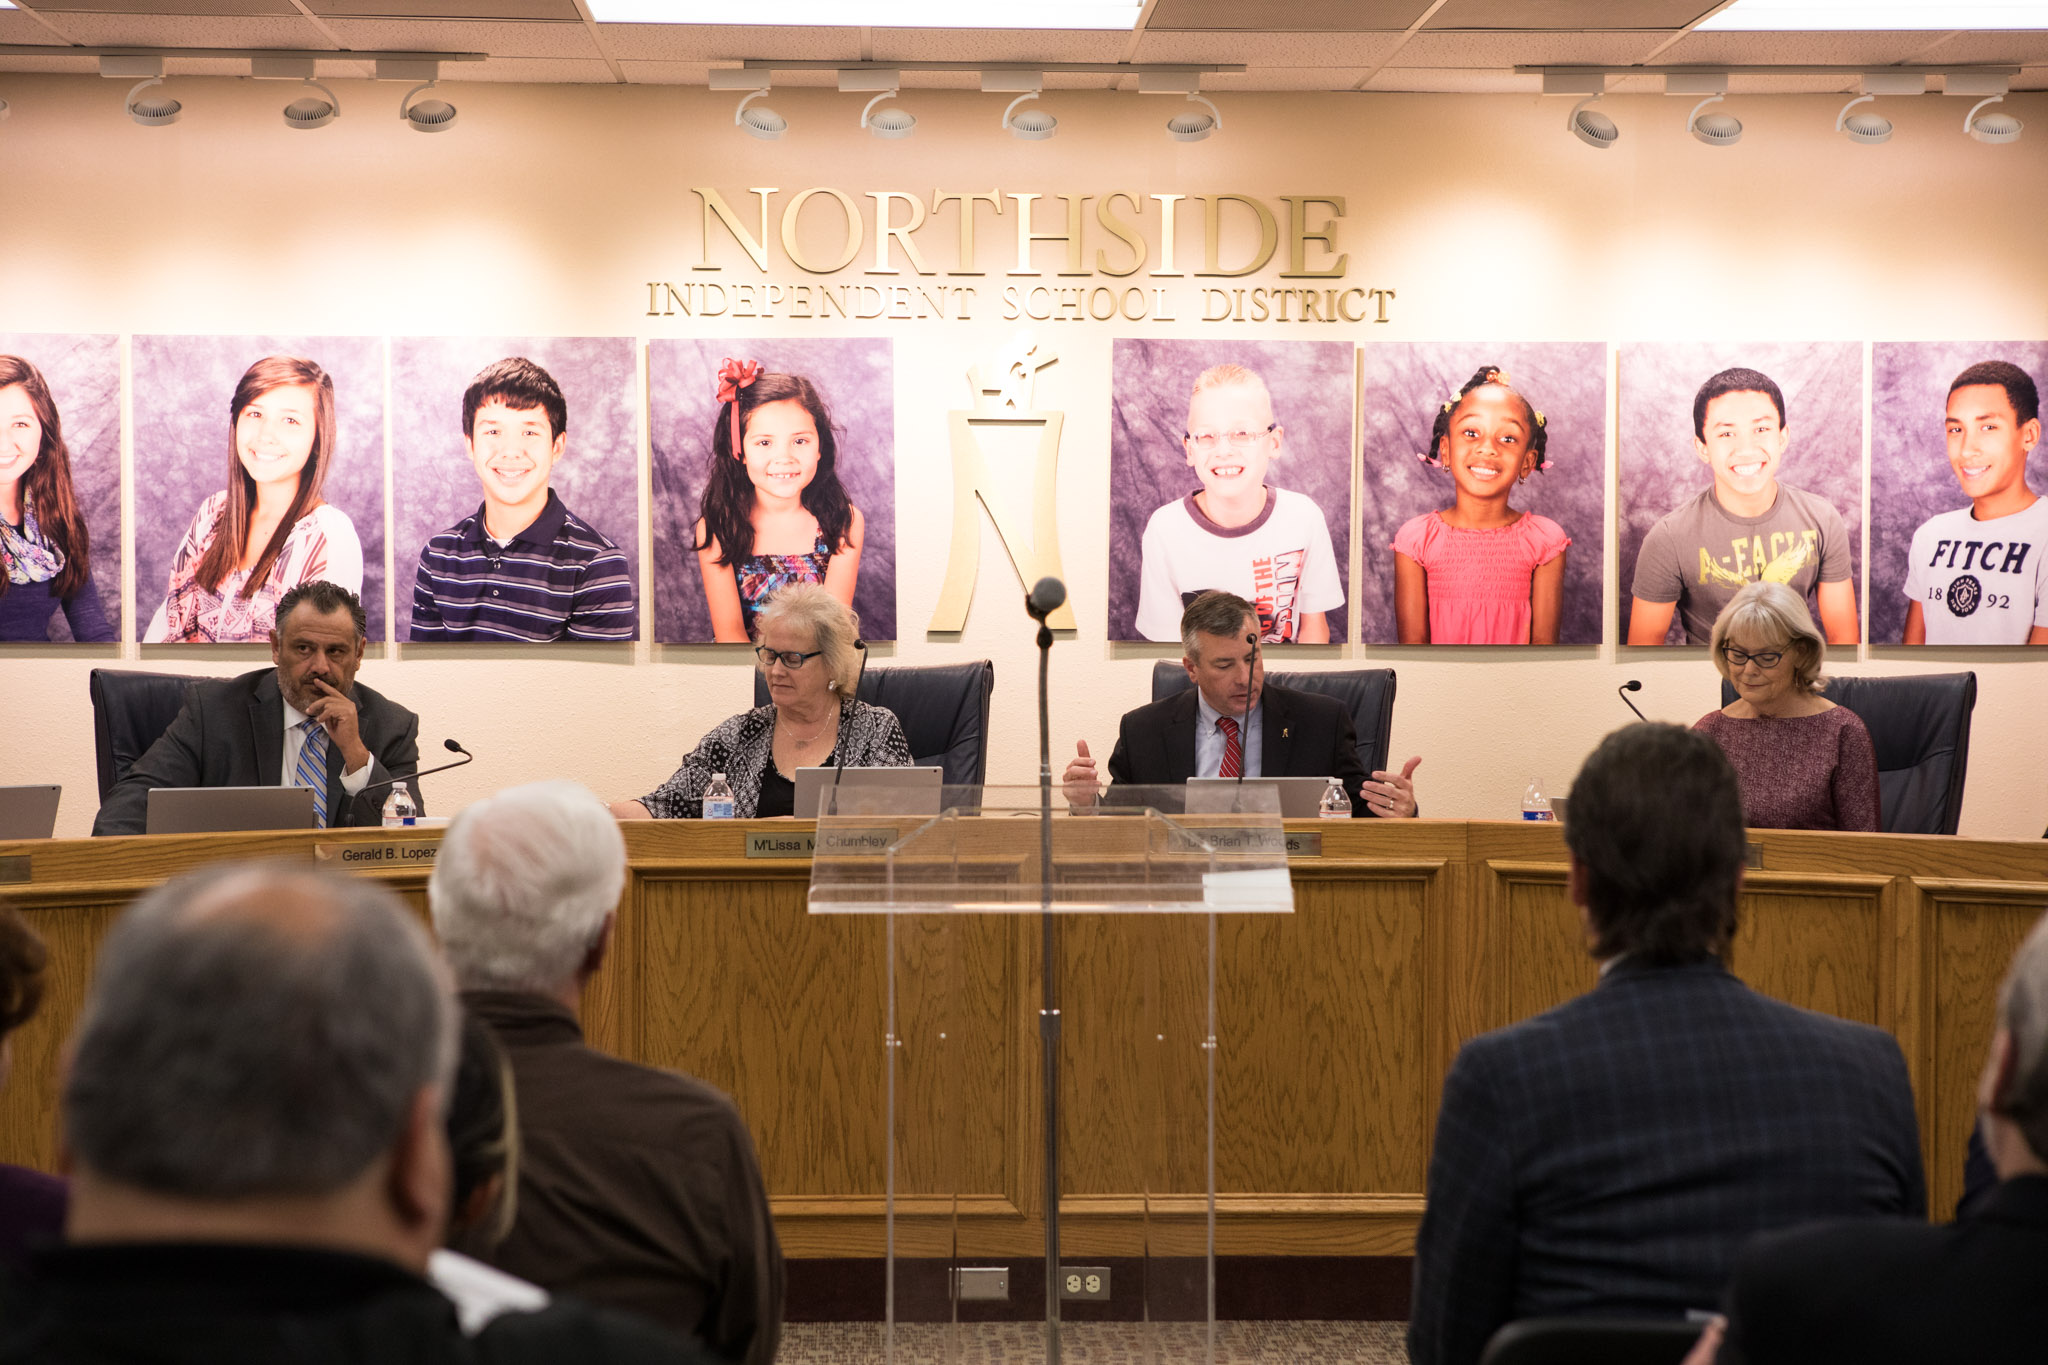 The Northside Independent School District board calls for the longest bond in the history of the district.